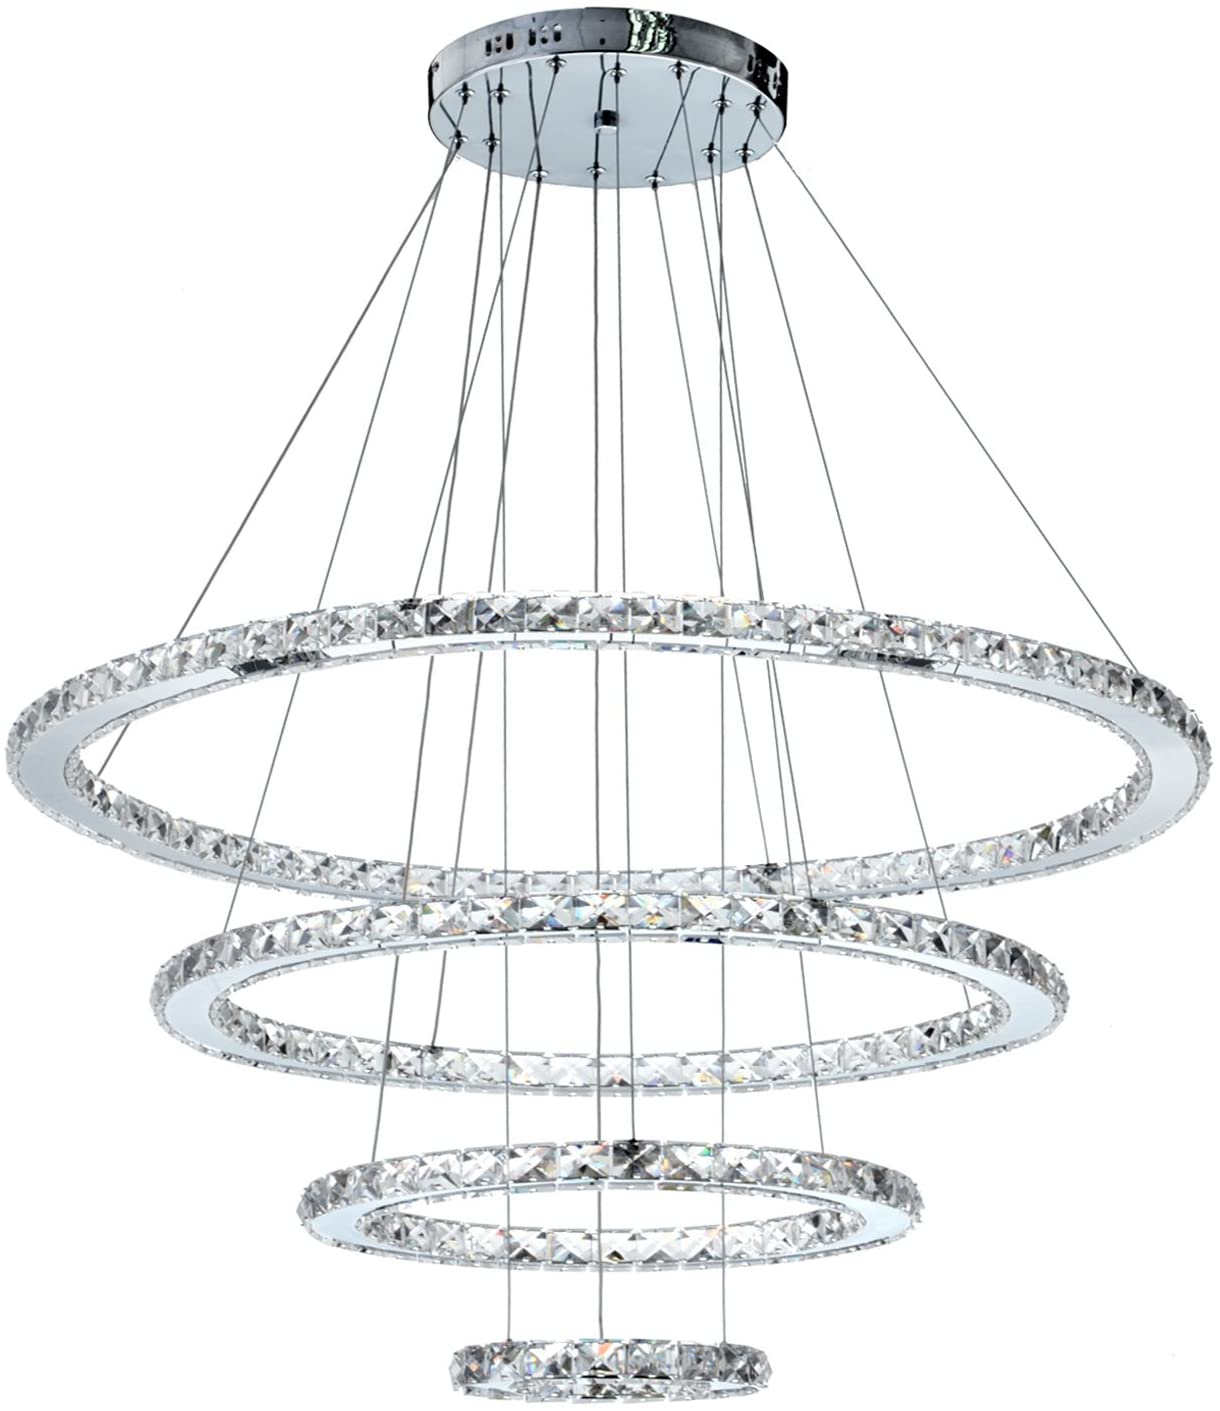 MEEROSEE Crystal Chandeliers Modern LED Ceiling Lights Fixtures Pendant Lighting Dining Room Chandelier Contemporary Adjustable Stainless Steel Cable 4 Rings DIY Design D31.5